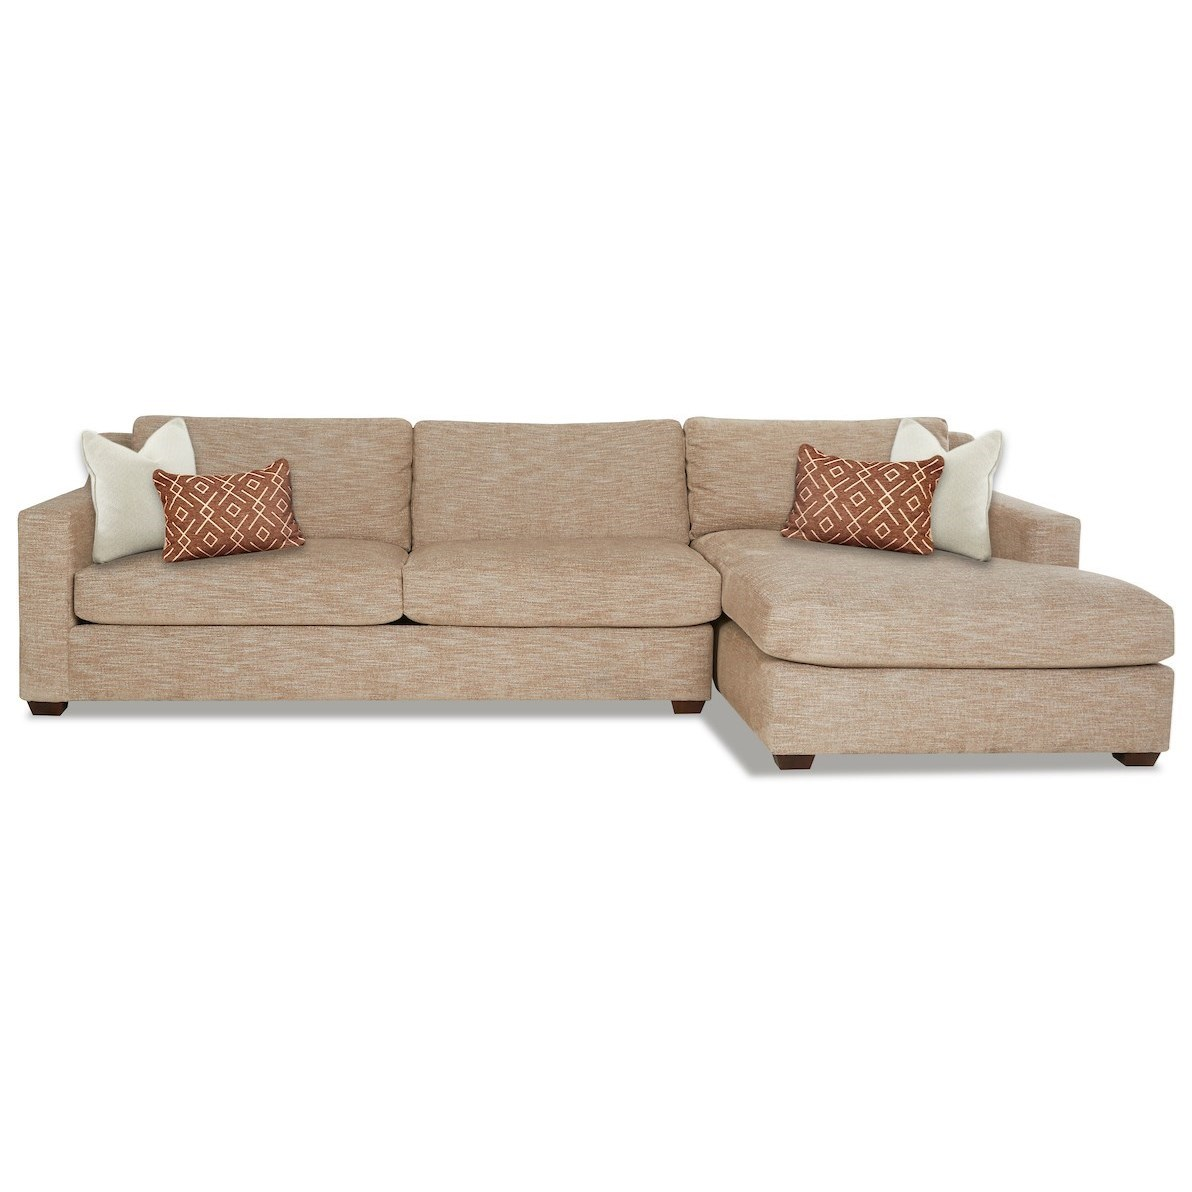 Novato 3-Seat Sectional Sofa w/ RAF Chaise by Klaussner at Johnny Janosik